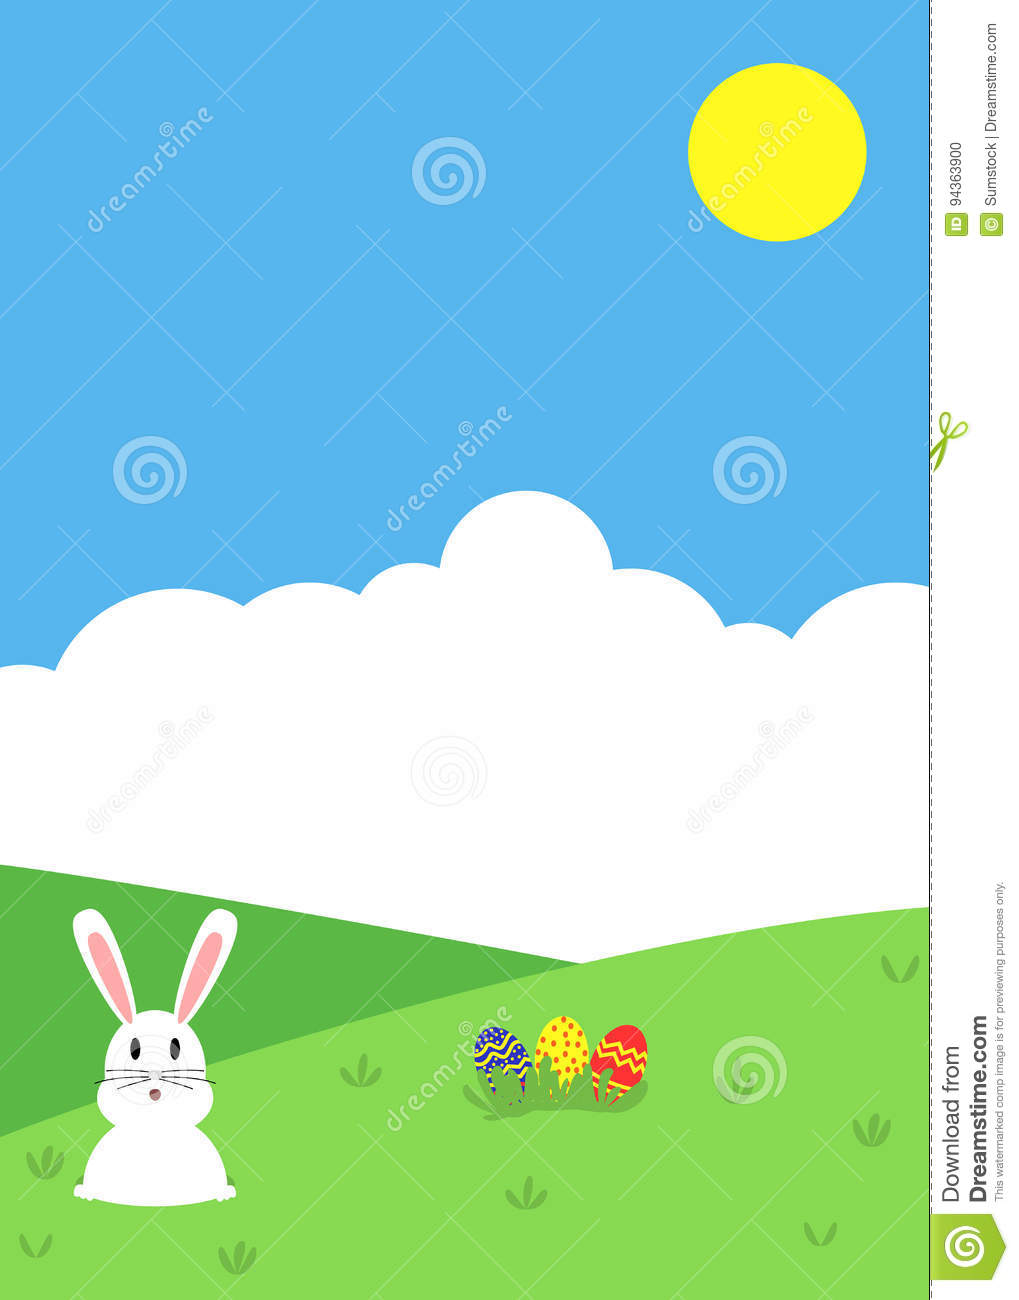 easter themed nature background with bunny and colorful eggs stock